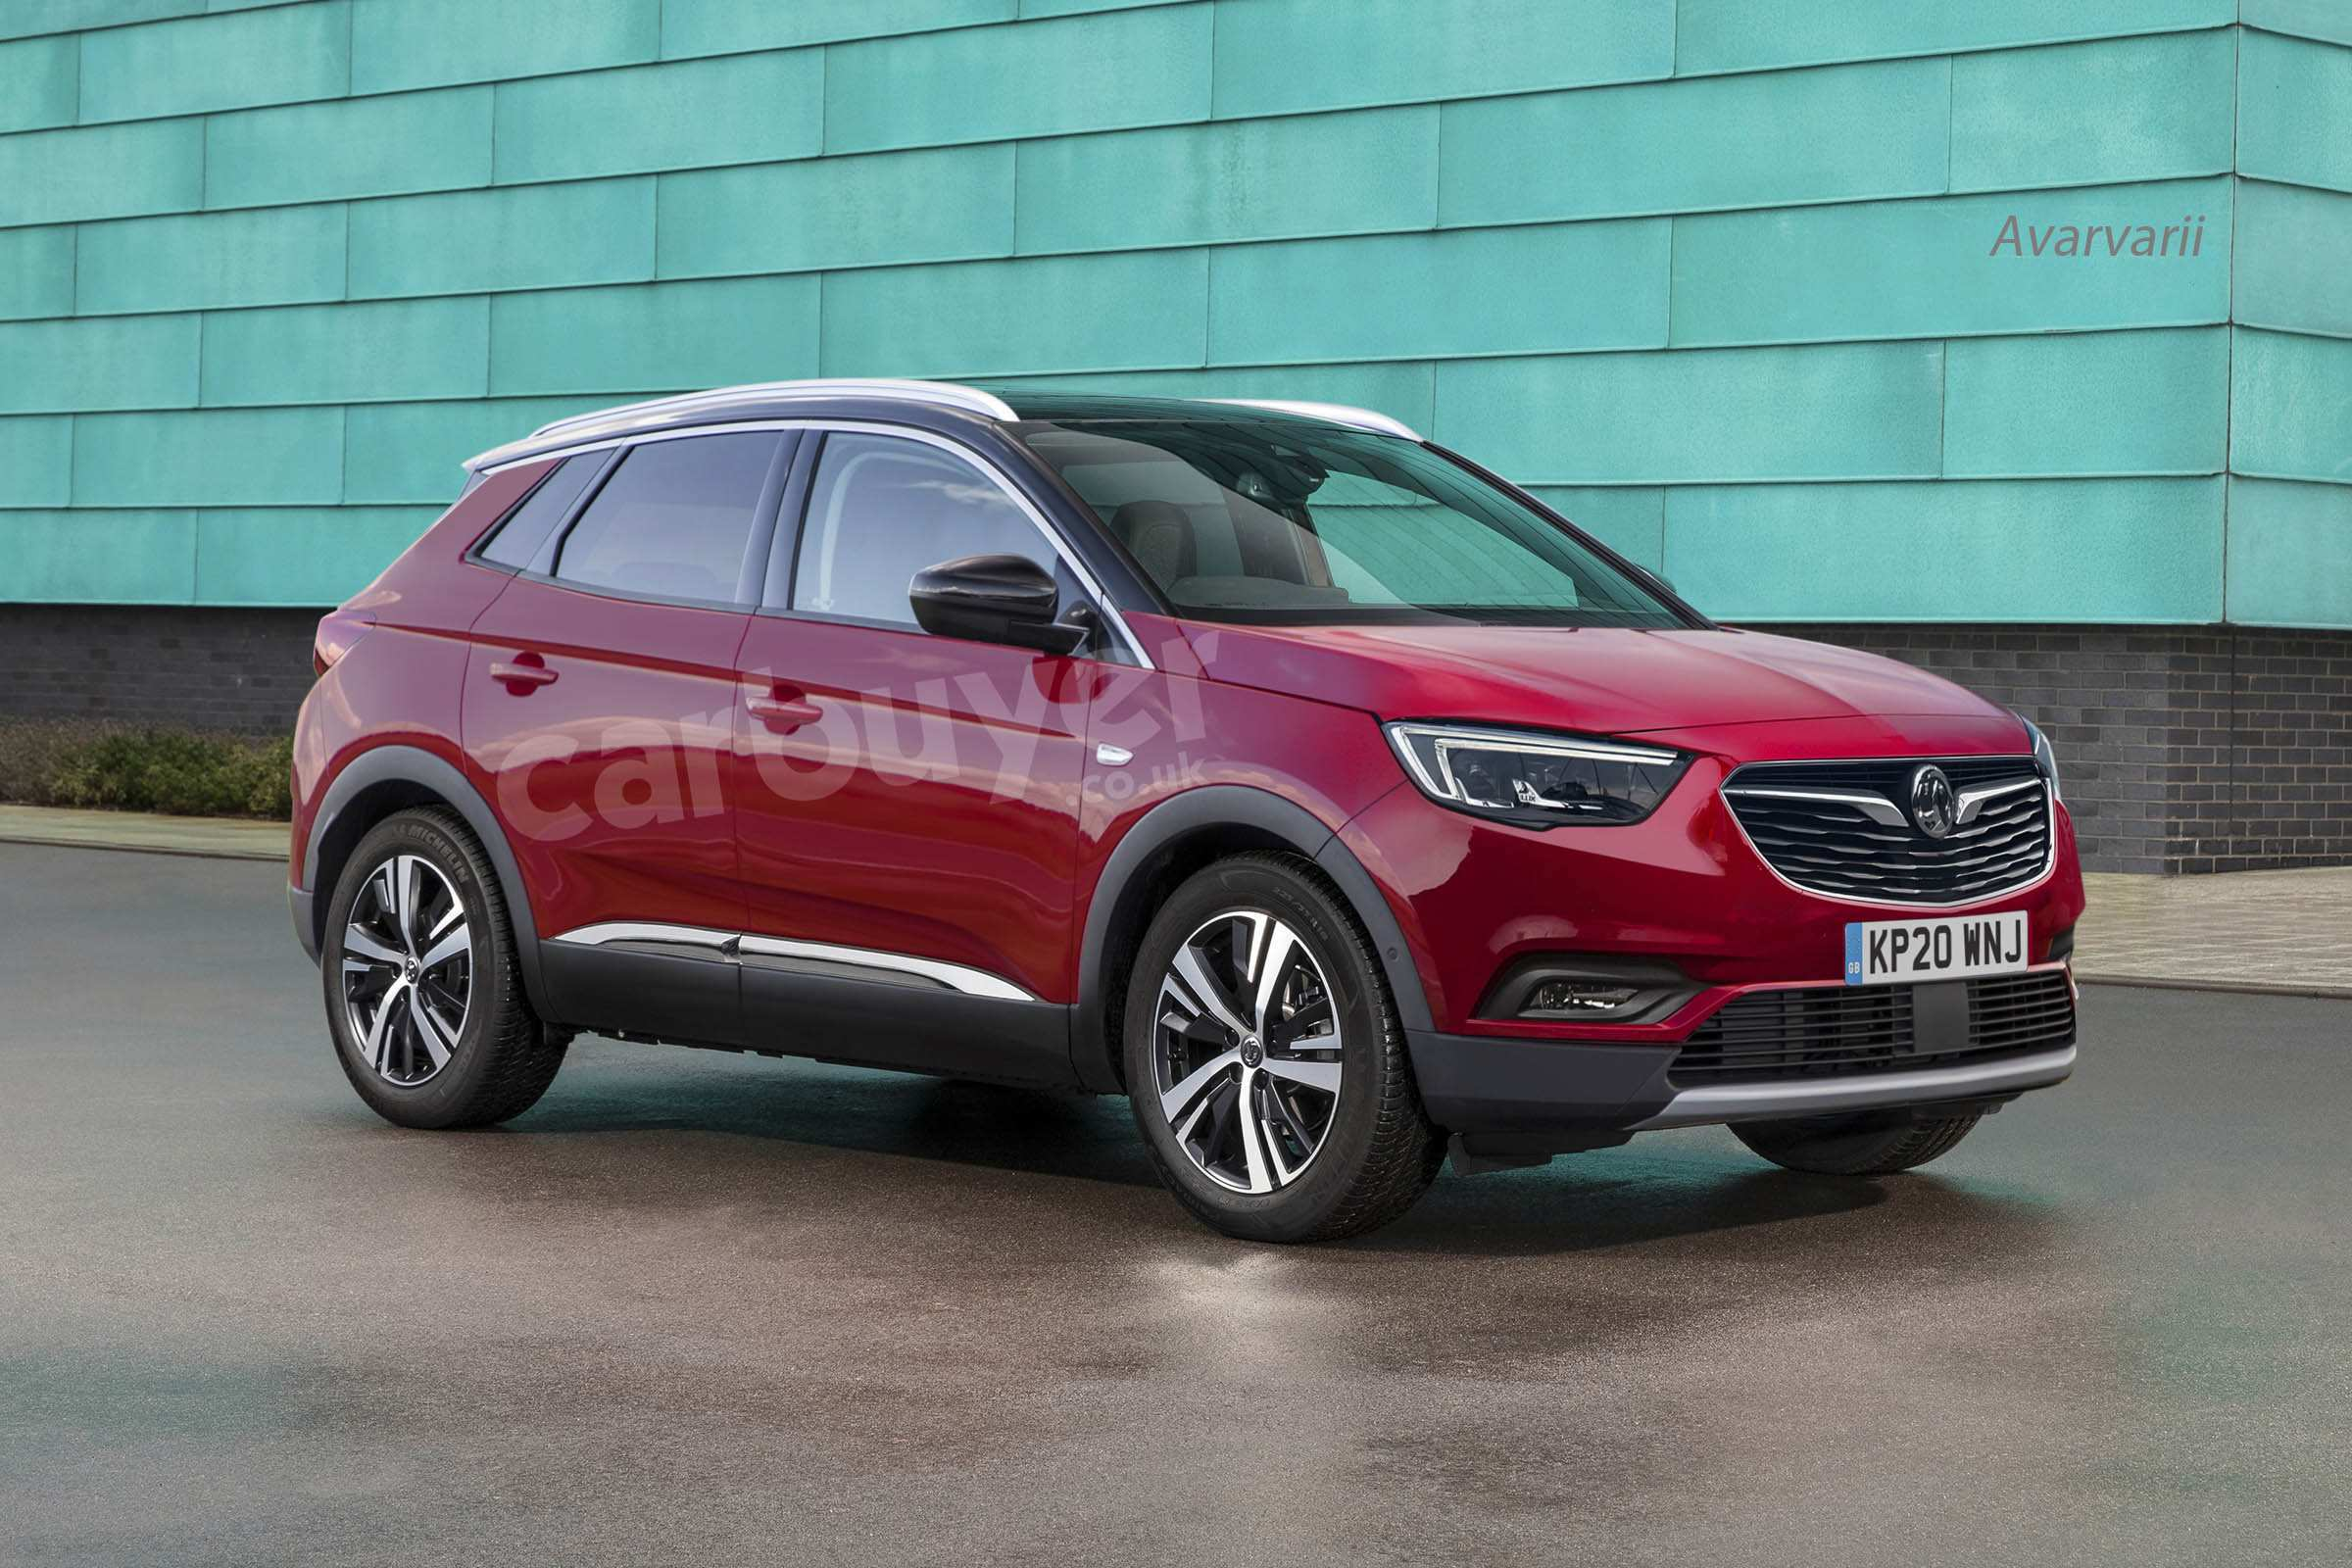 66 All New Nuova Opel Mokka X 2020 New Review by Nuova Opel Mokka X 2020